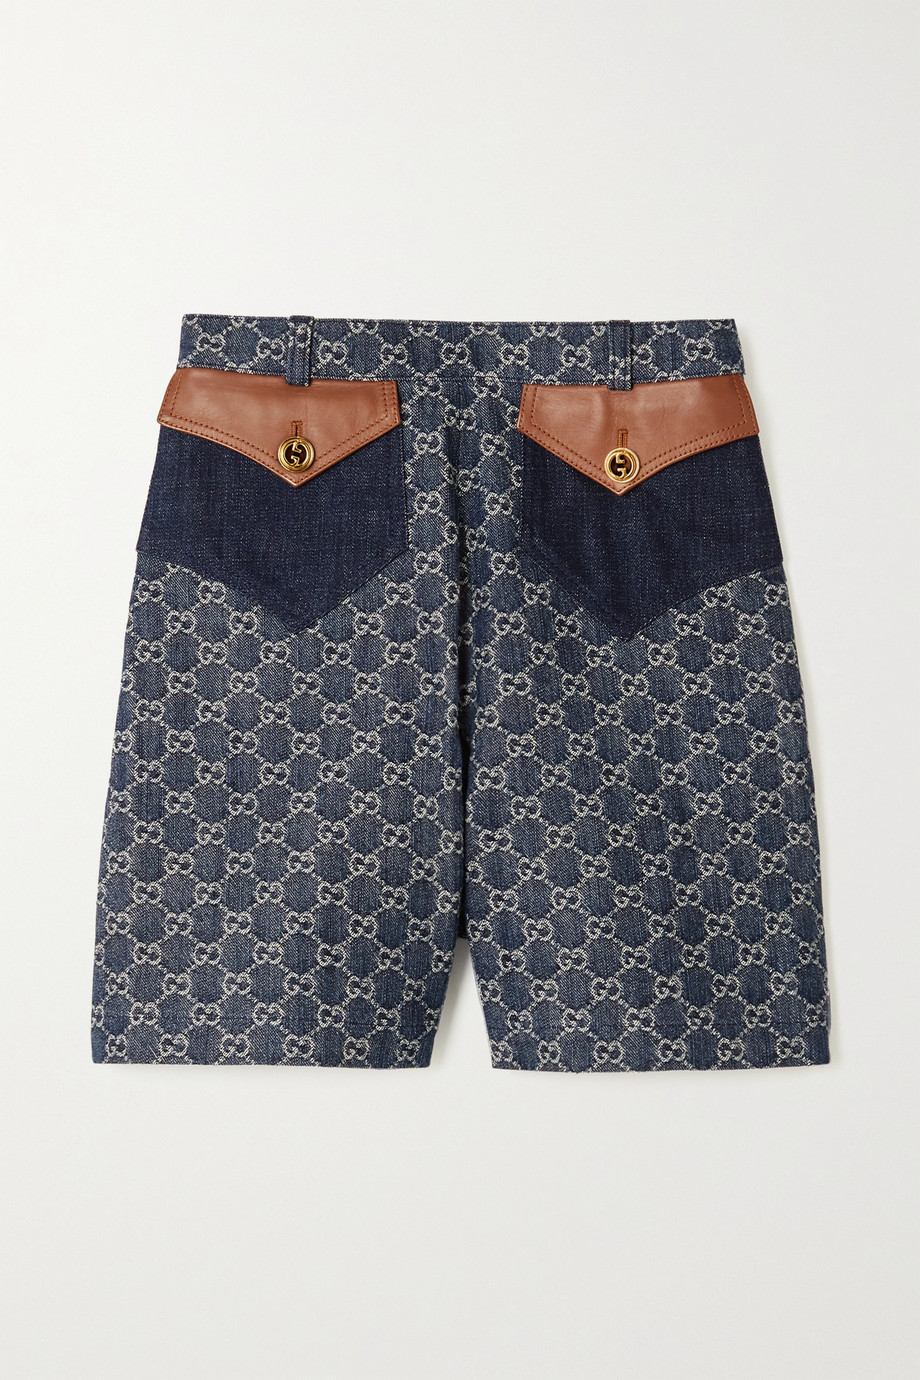 GUCCI + NET SUSTAIN leather-trimmed organic denim-jacquard shorts